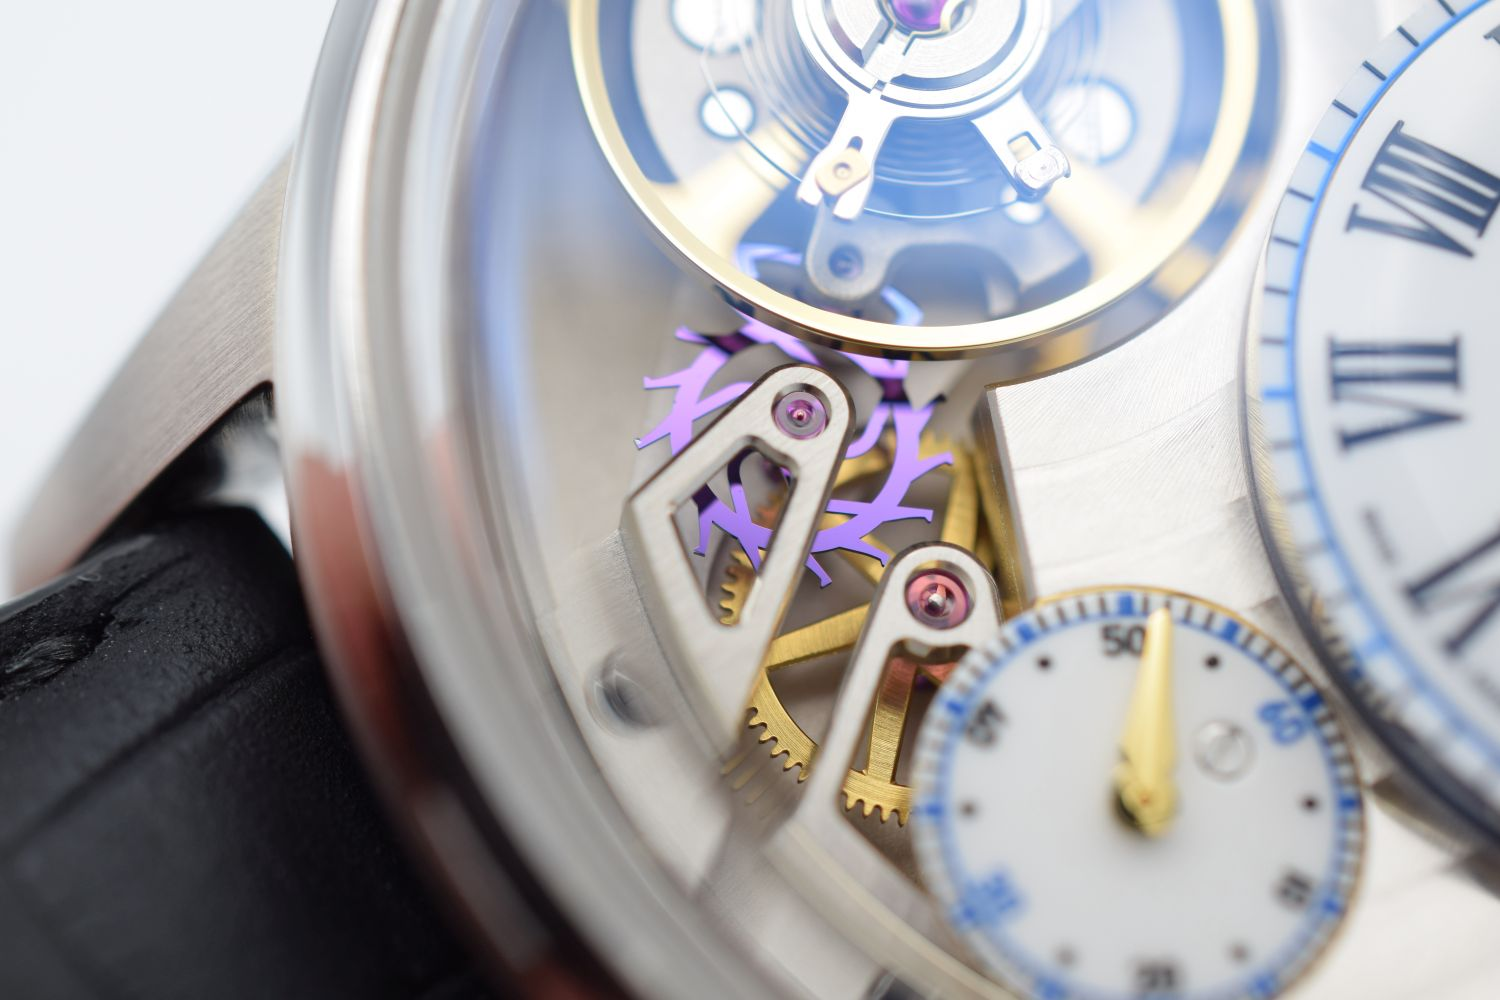 GENTLEMAN'S MAURICE LACROIX MATERPIECE GRAVITY LIMITED EDITION, AUTOMATIC MANUFACTURE ML230, - Image 7 of 8